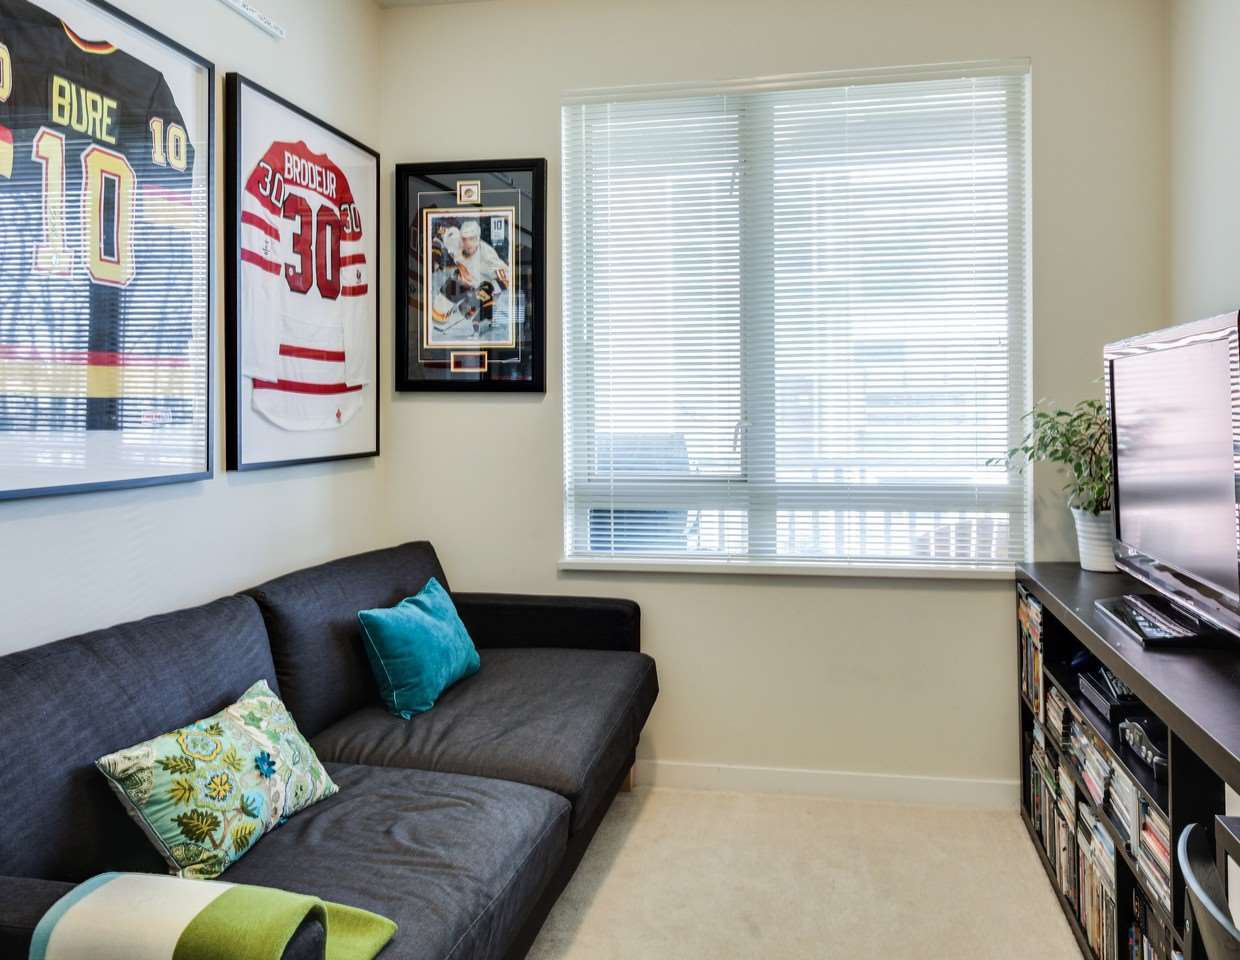 Photo 11: Photos: 319 119 W 22ND STREET in North Vancouver: Central Lonsdale Condo for sale : MLS®# R2047201